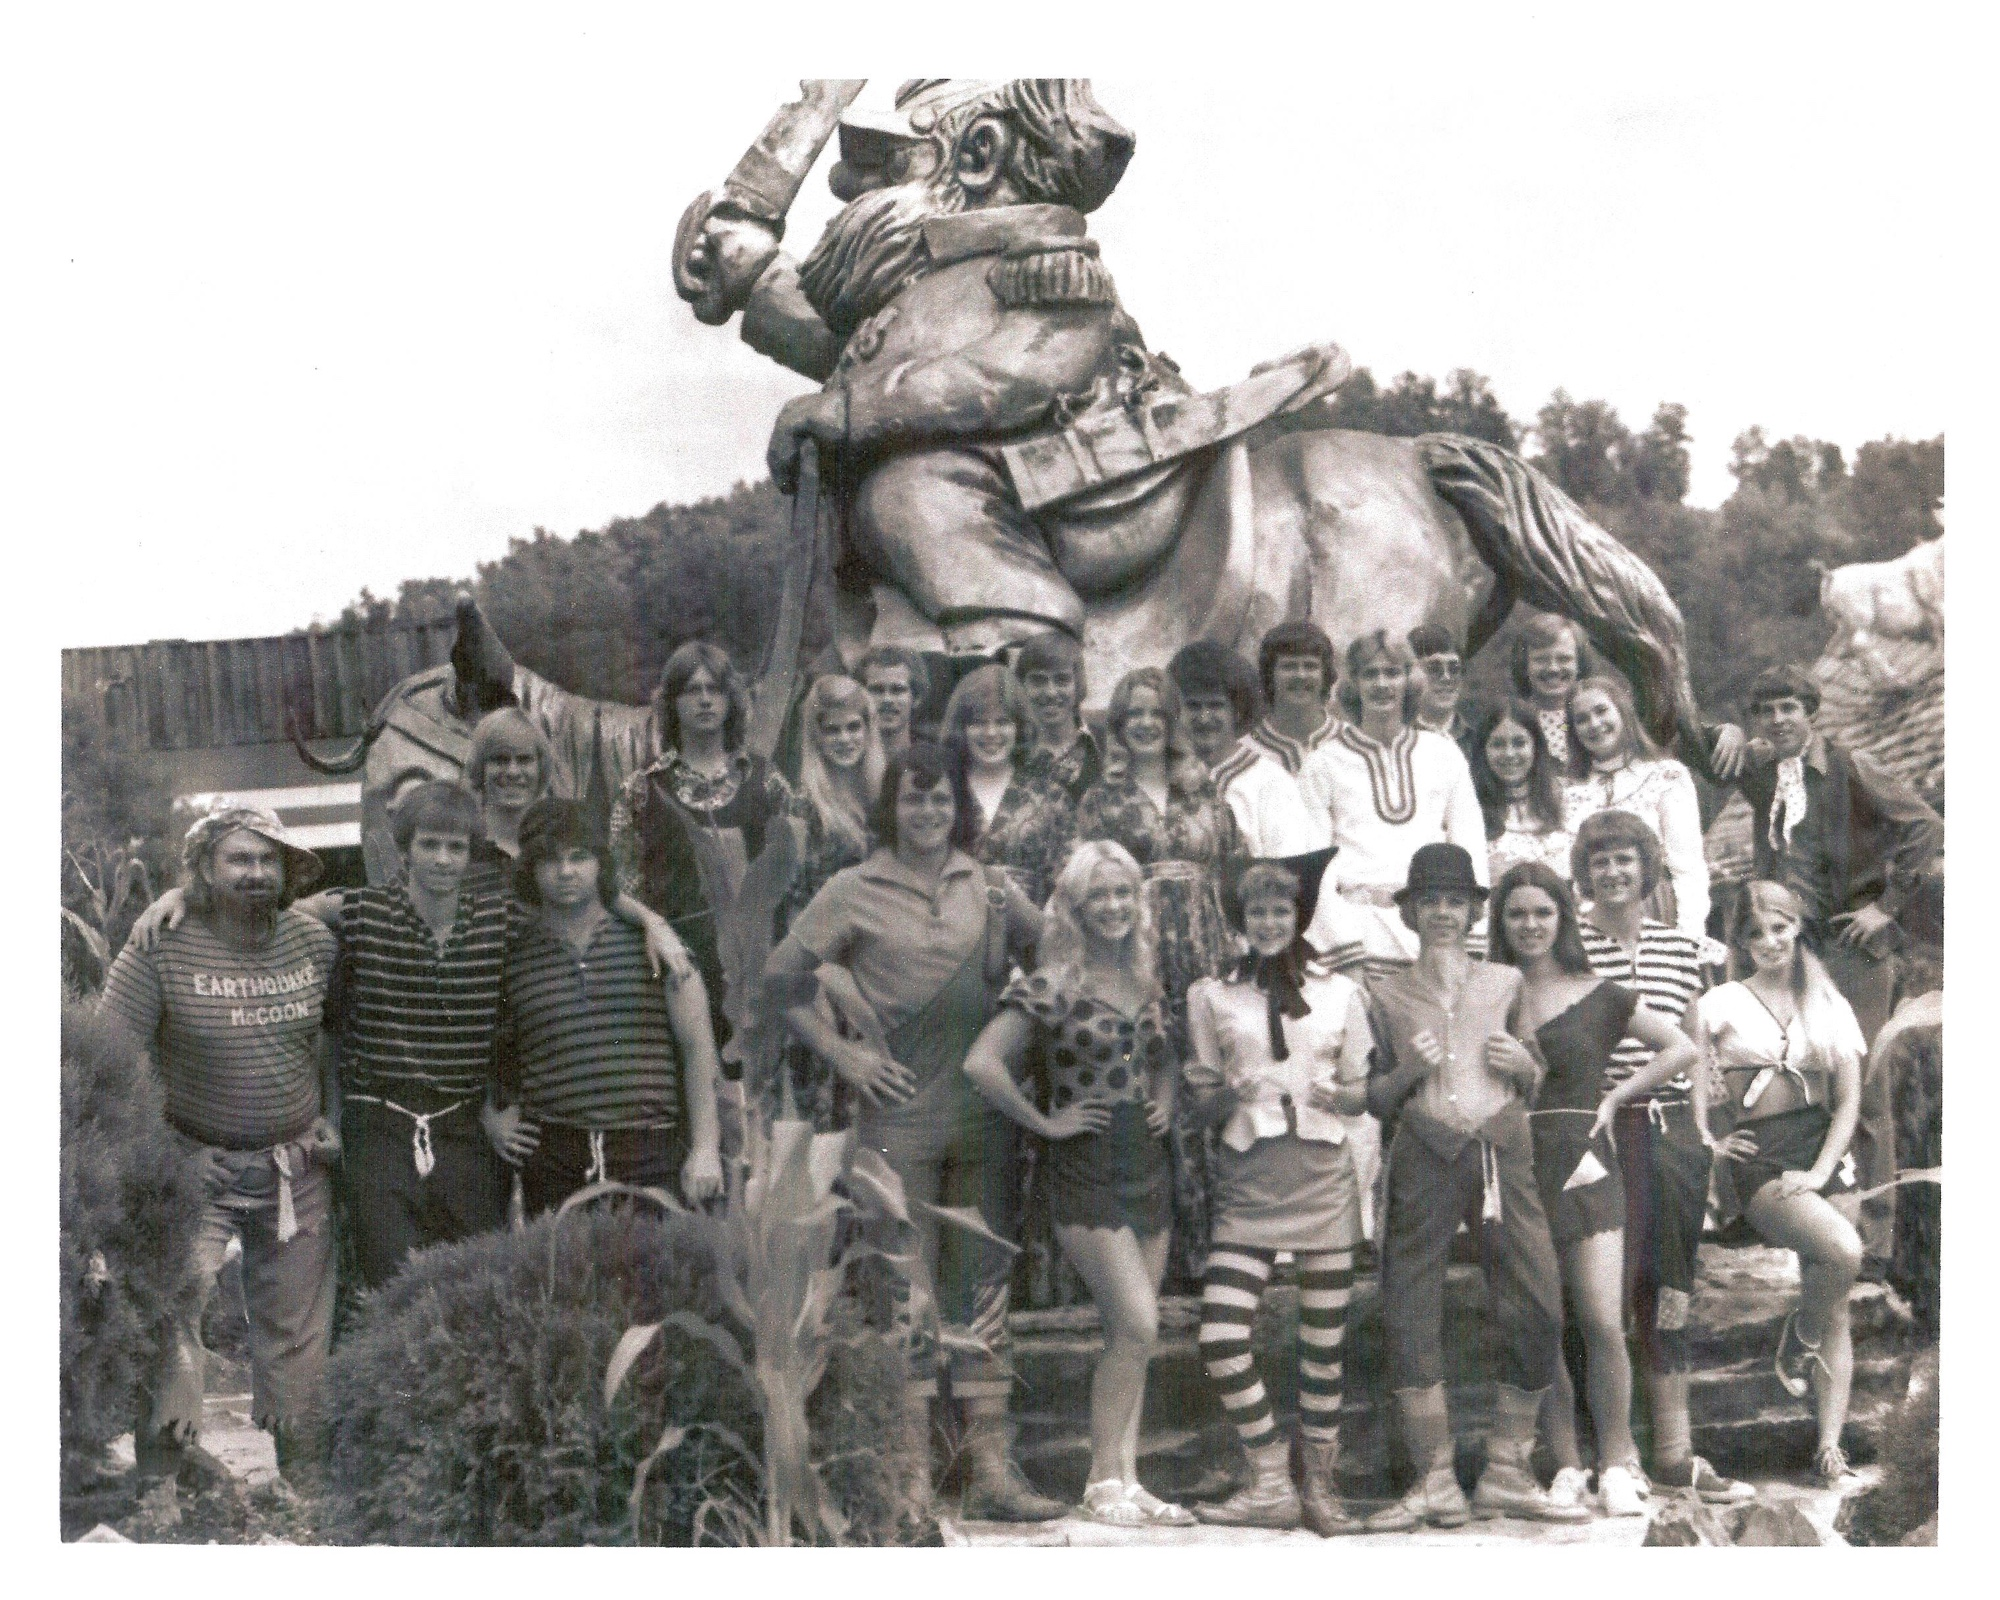 The park's performers and actors, in front of the Jubilation T. Cornpone statue, 1975